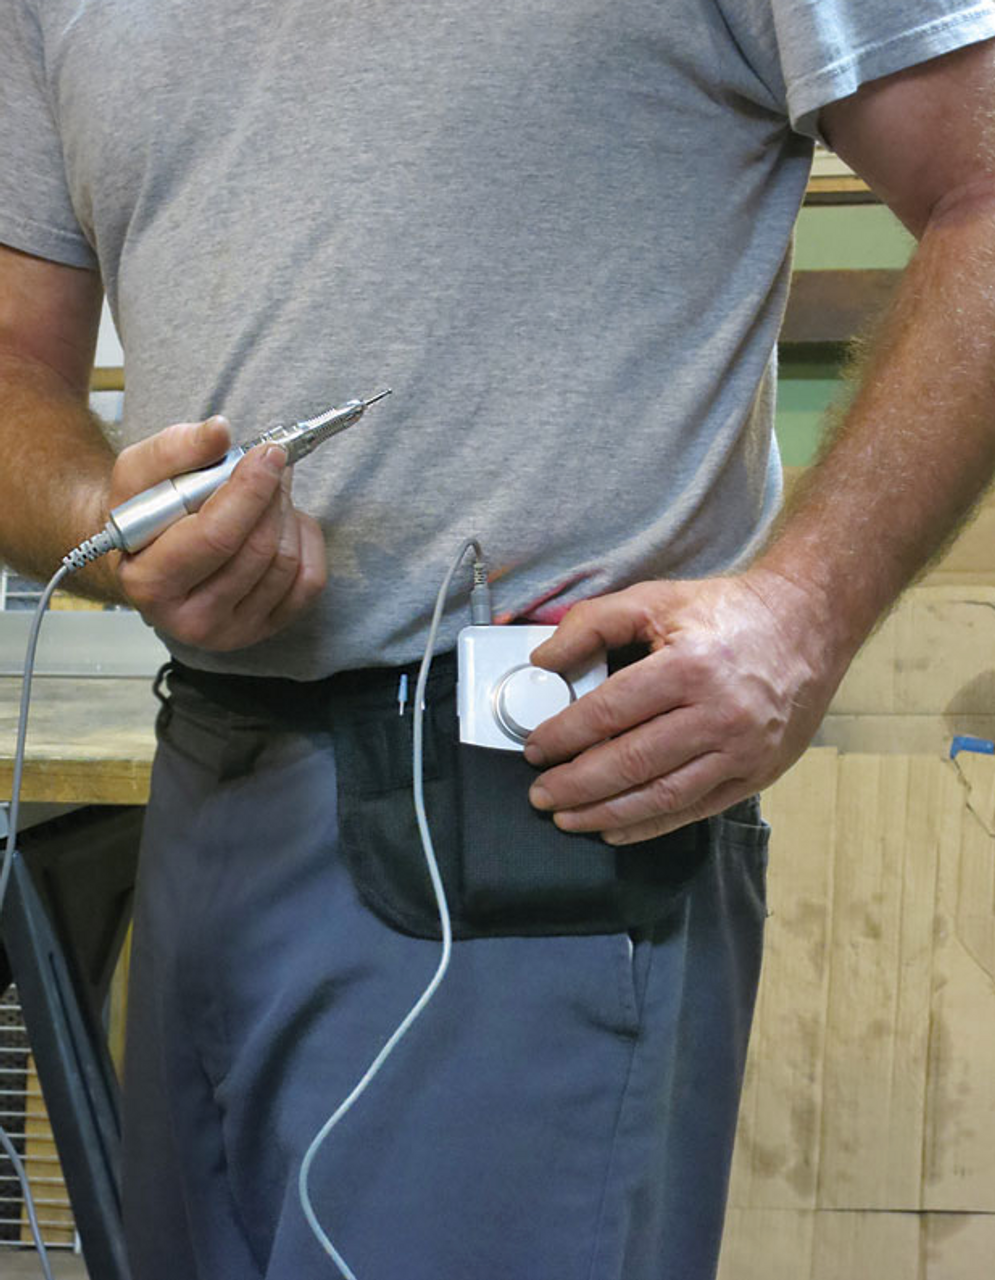 Foredom Micro Motor Carrying Pouch in use